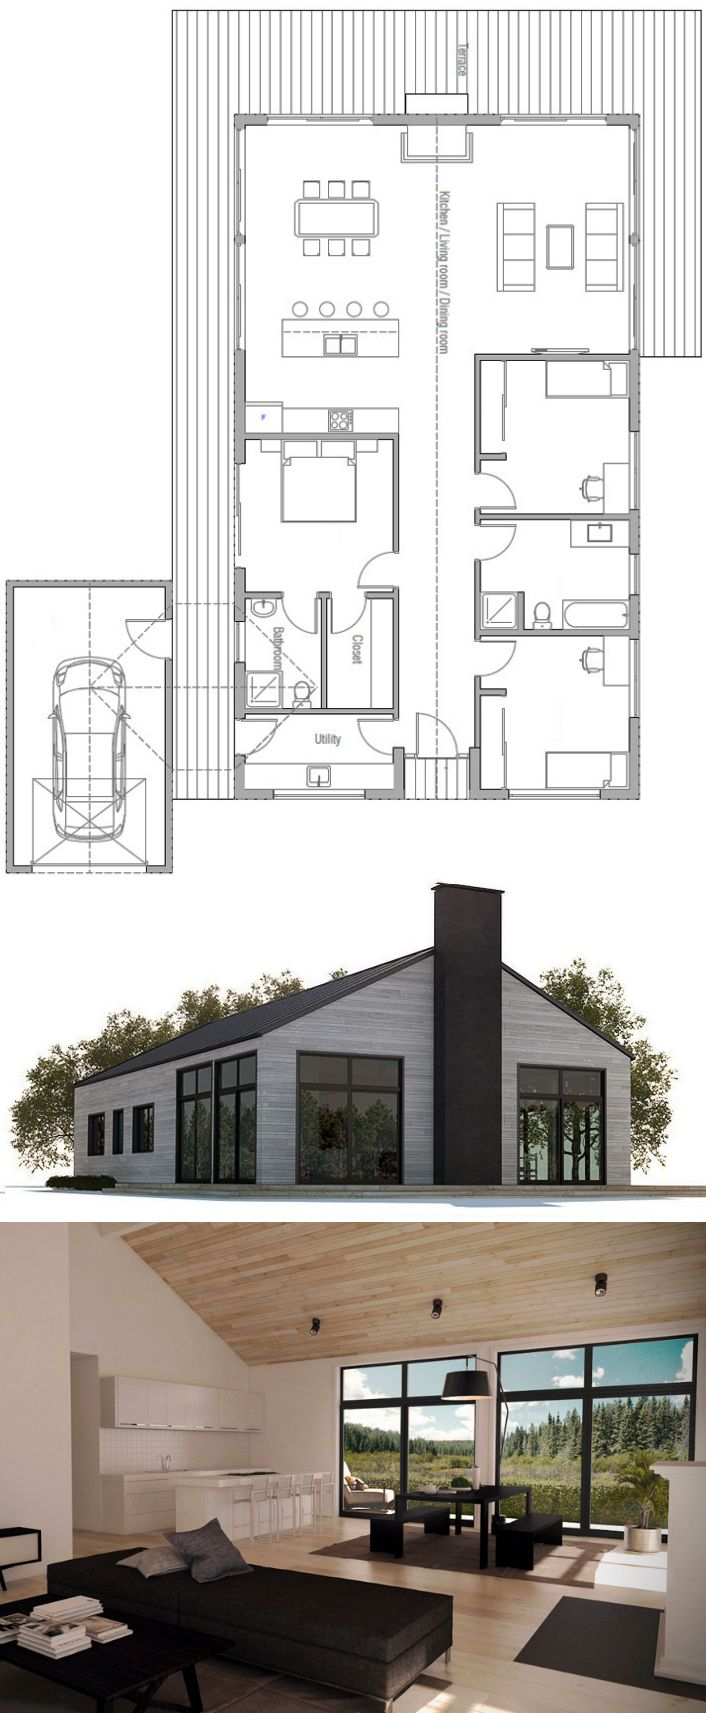 House Design Small House Ch232 100 Affordable House Plans